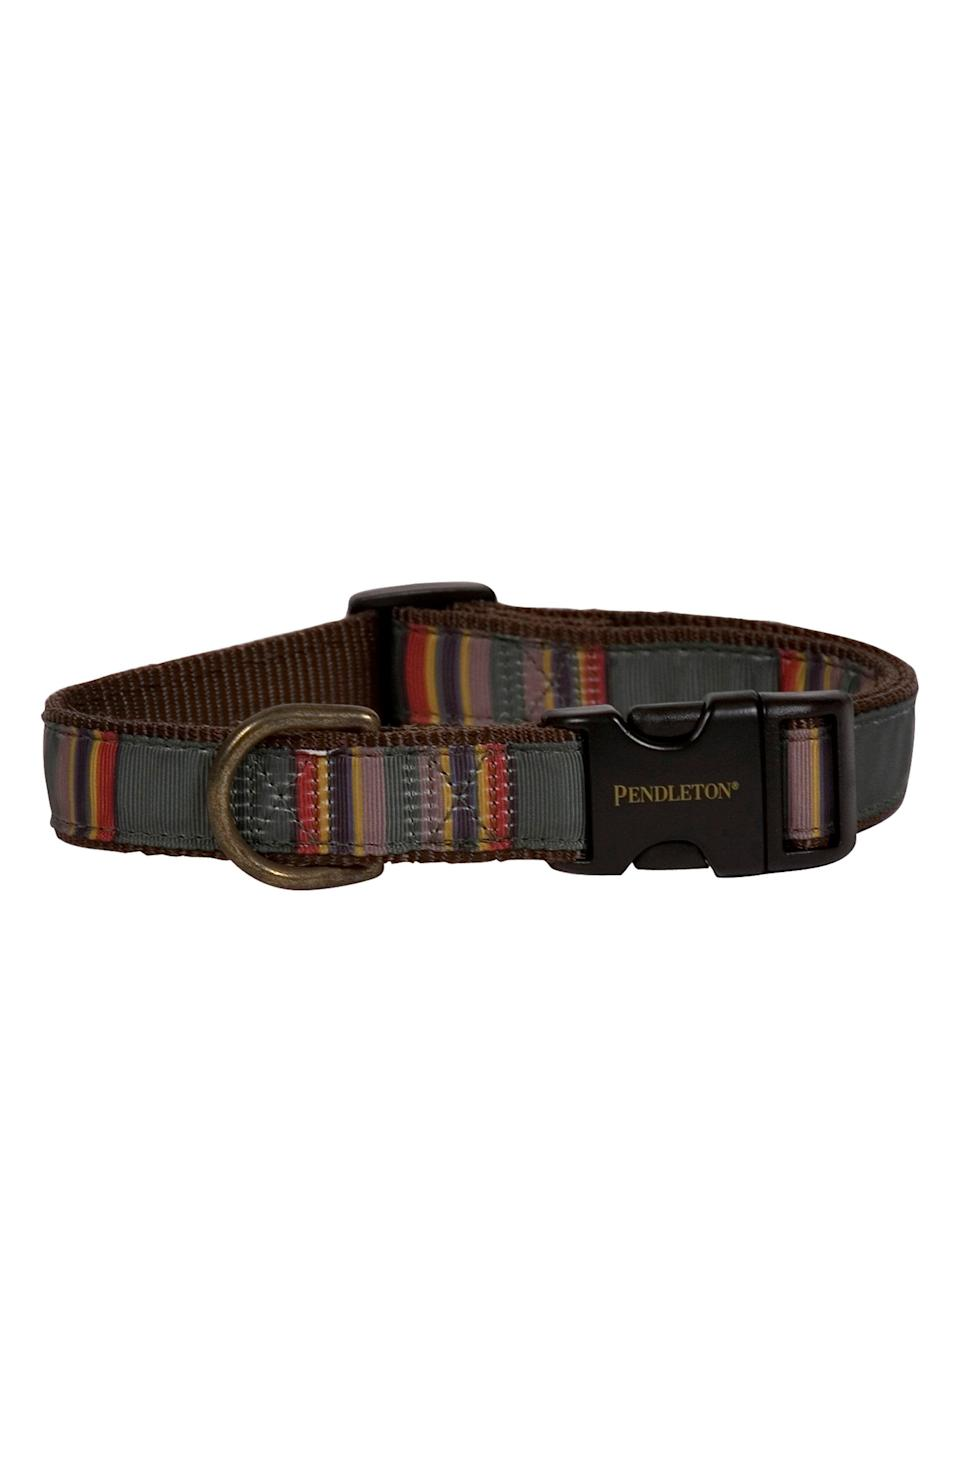 """<p><strong>Pendleton</strong></p><p>nordstrom.com</p><p><strong>$35.00</strong></p><p><a href=""""https://go.redirectingat.com?id=74968X1596630&url=https%3A%2F%2Fwww.nordstrom.com%2Fs%2Fpendleton-camp-dog-collar%2F5922983&sref=https%3A%2F%2Fwww.esquire.com%2Flifestyle%2Fg37069847%2Foutdoorsmen-gifts%2F"""" rel=""""nofollow noopener"""" target=""""_blank"""" data-ylk=""""slk:Buy"""" class=""""link rapid-noclick-resp"""">Buy</a></p><p>For your giftee's favorite trail companion.</p>"""